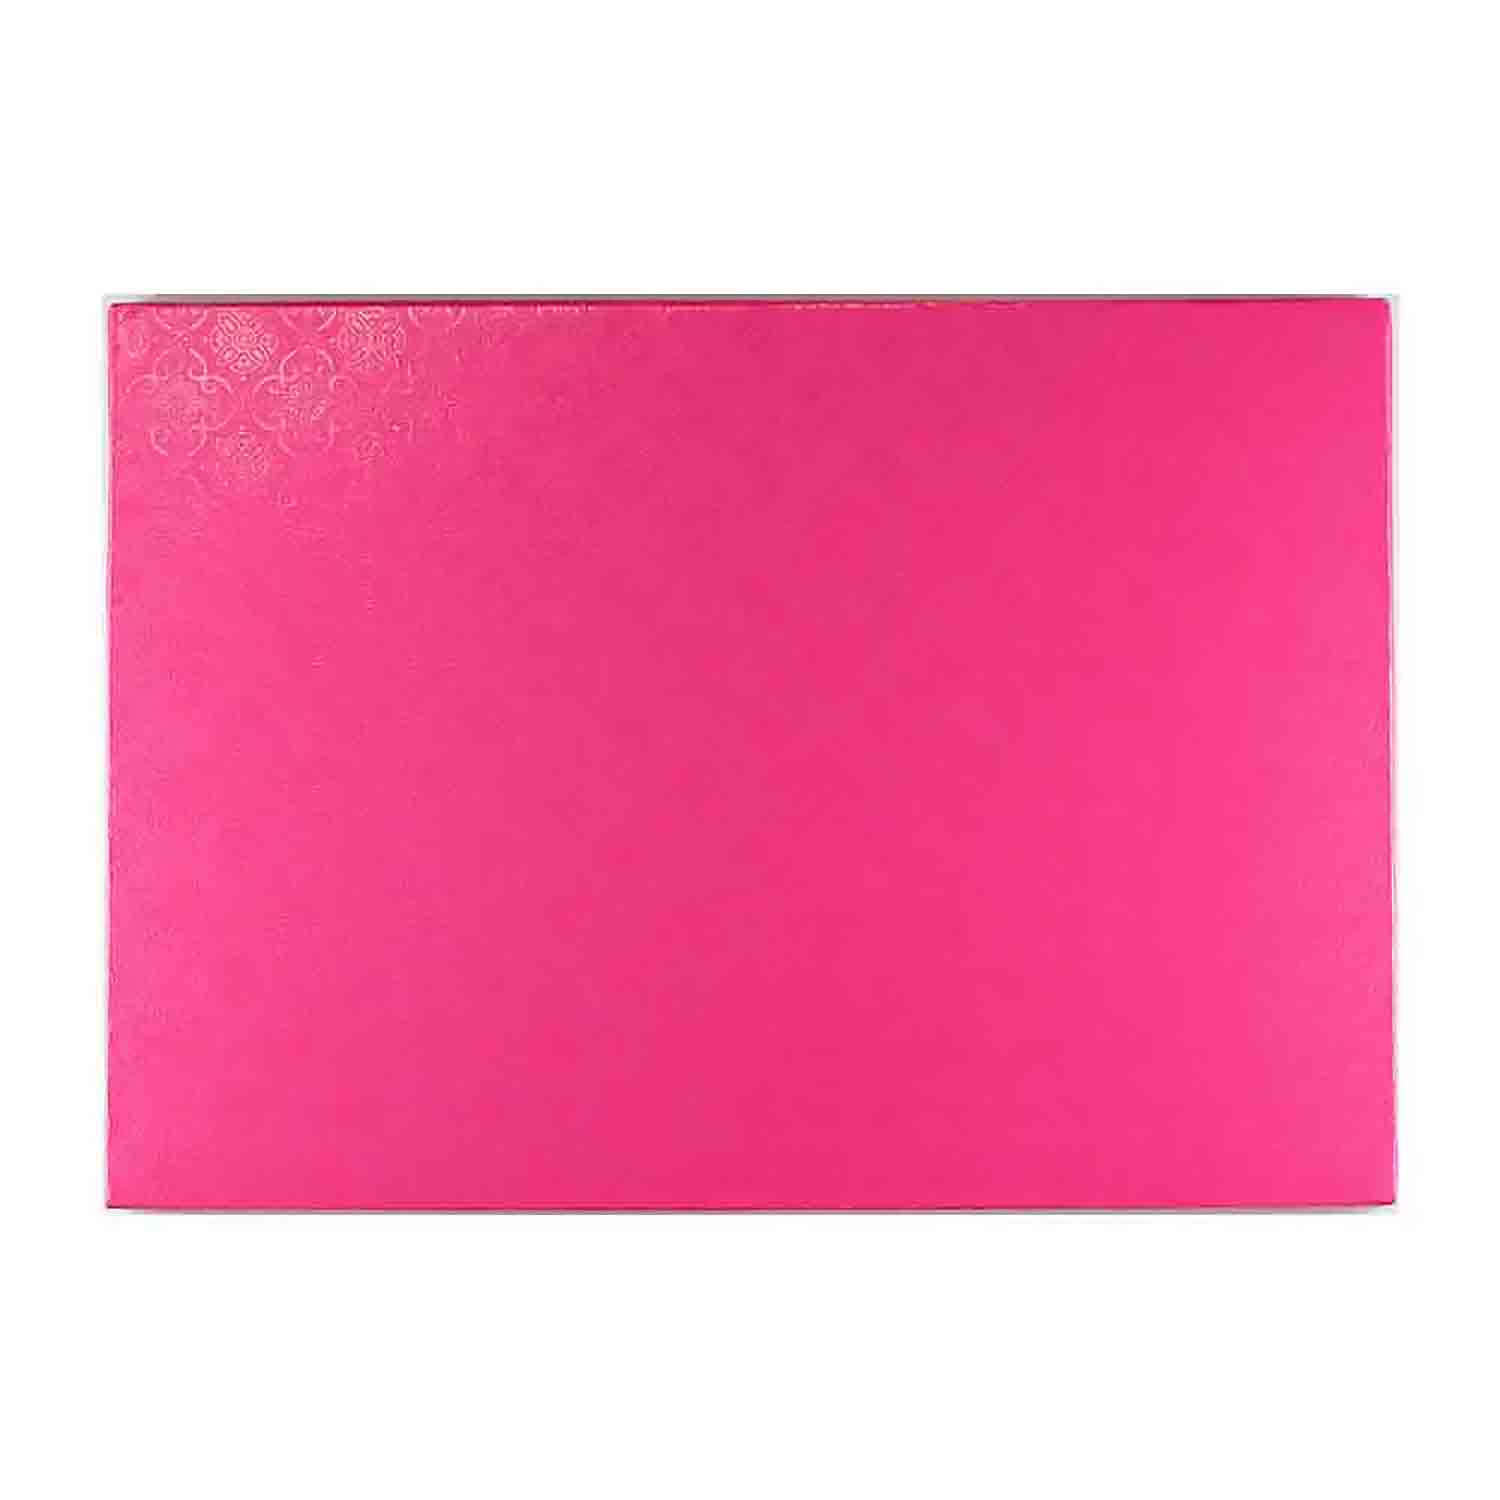 "10"" x 14"" Rectangle Pink Foil Quarter Sheet Cake Drum"